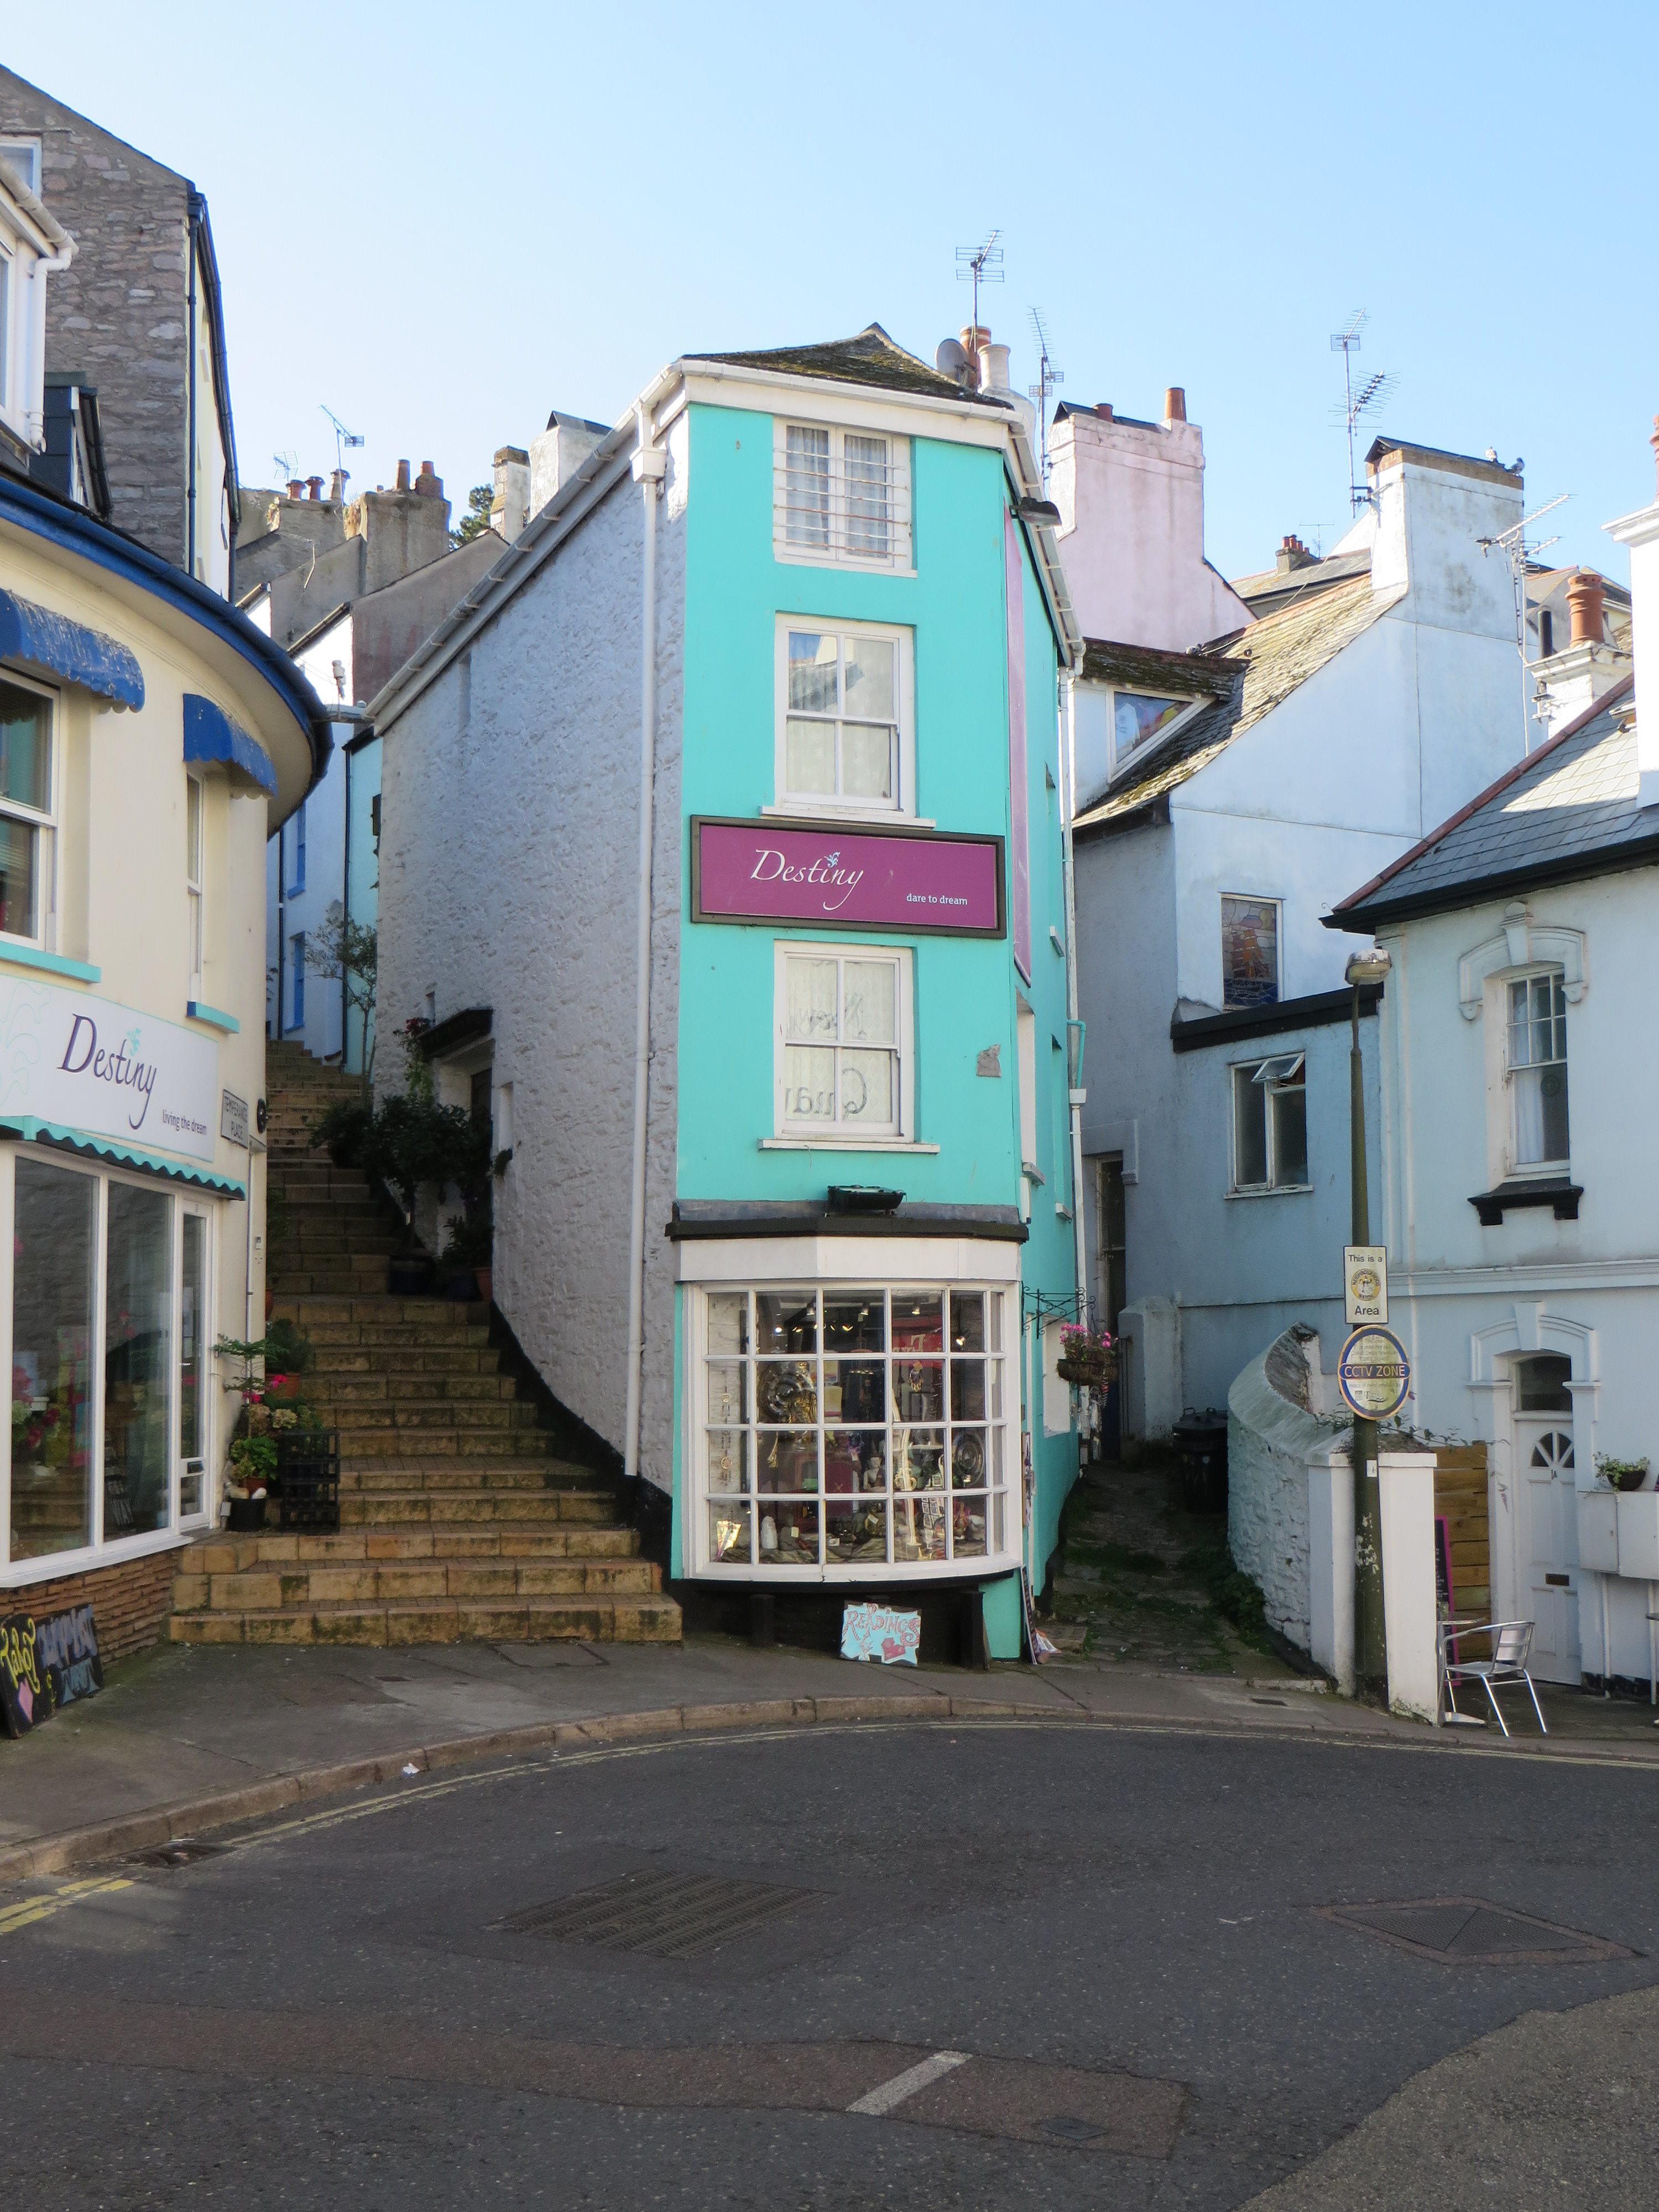 au ergew hnliche h user teil 1 the coffin house in brixham devon ingos england blog. Black Bedroom Furniture Sets. Home Design Ideas